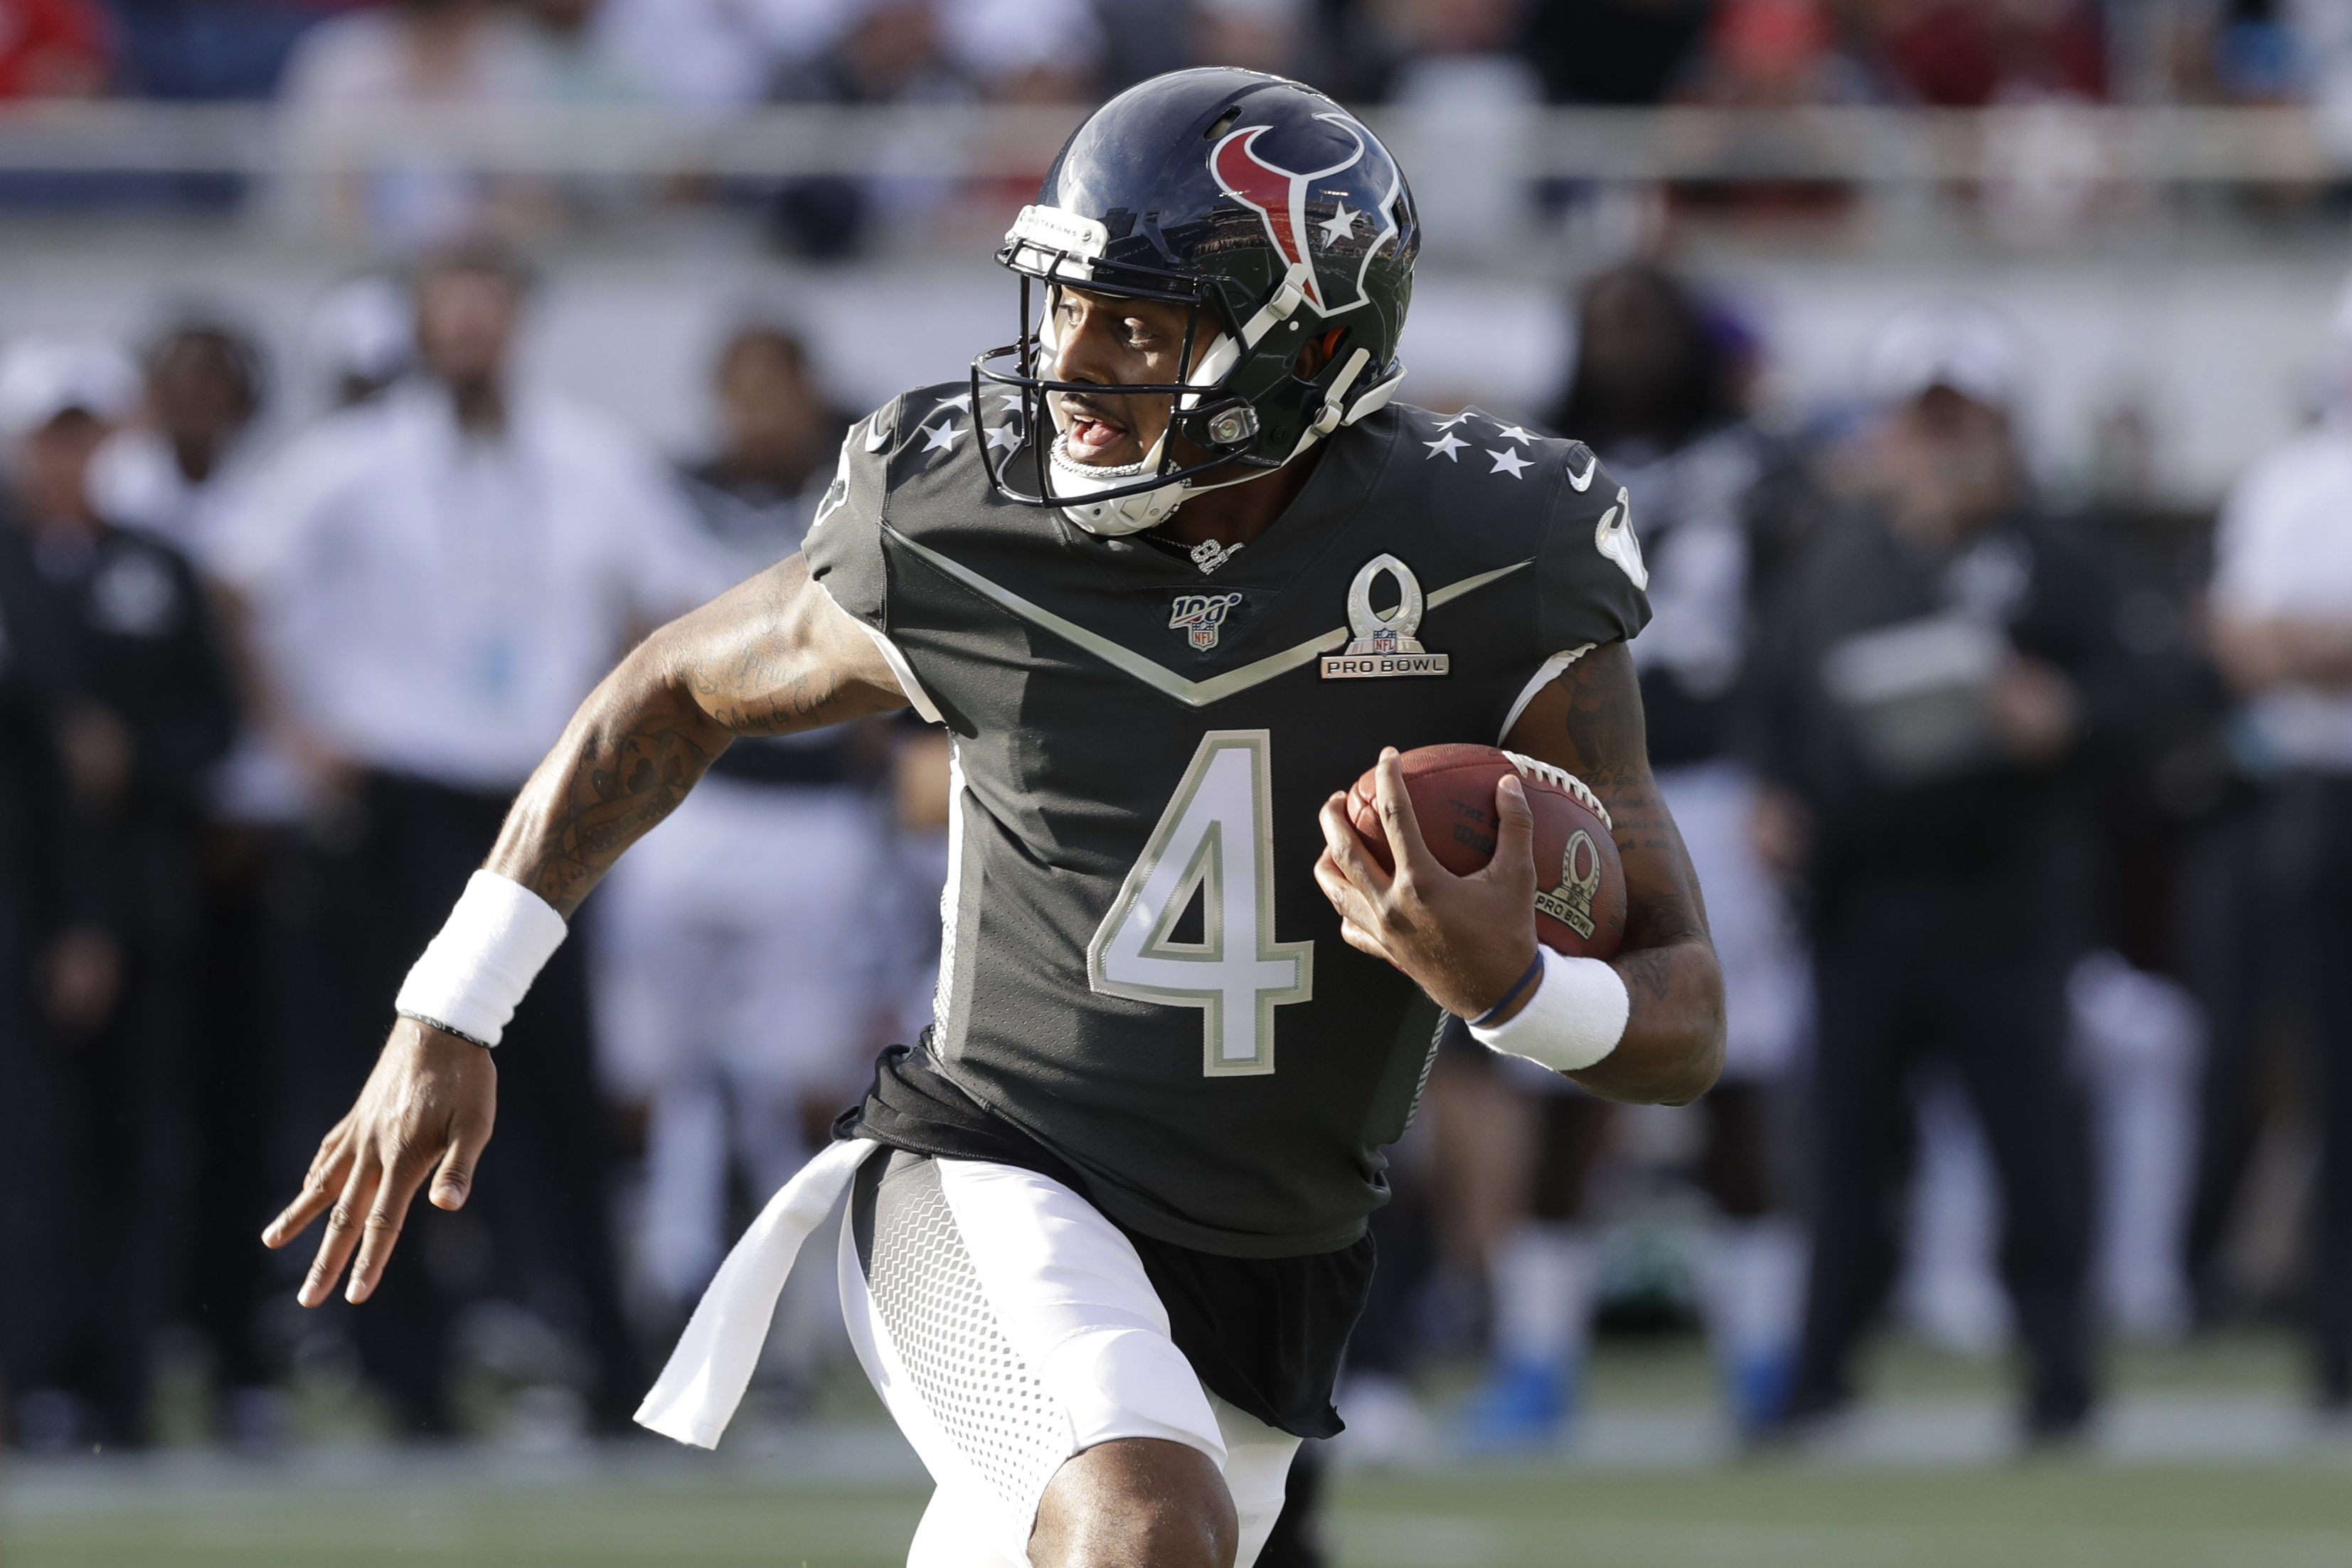 Watson poised to lead Texans offense with Hopkins in Arizona